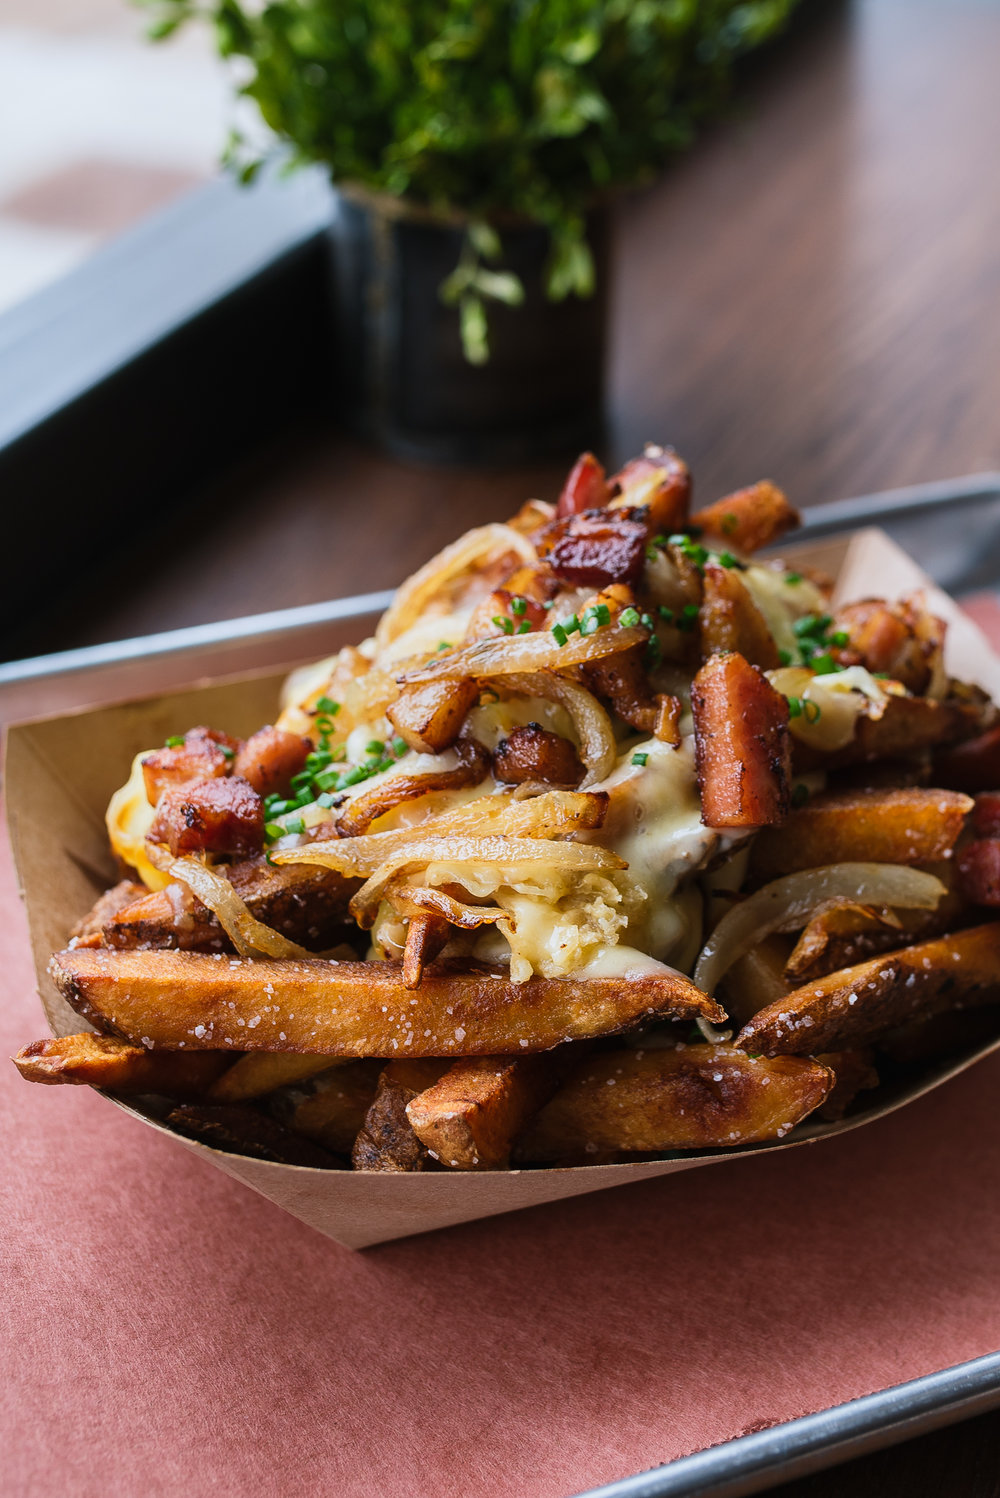 Loaded cheese fries - raclette, house bacon, onions, chives